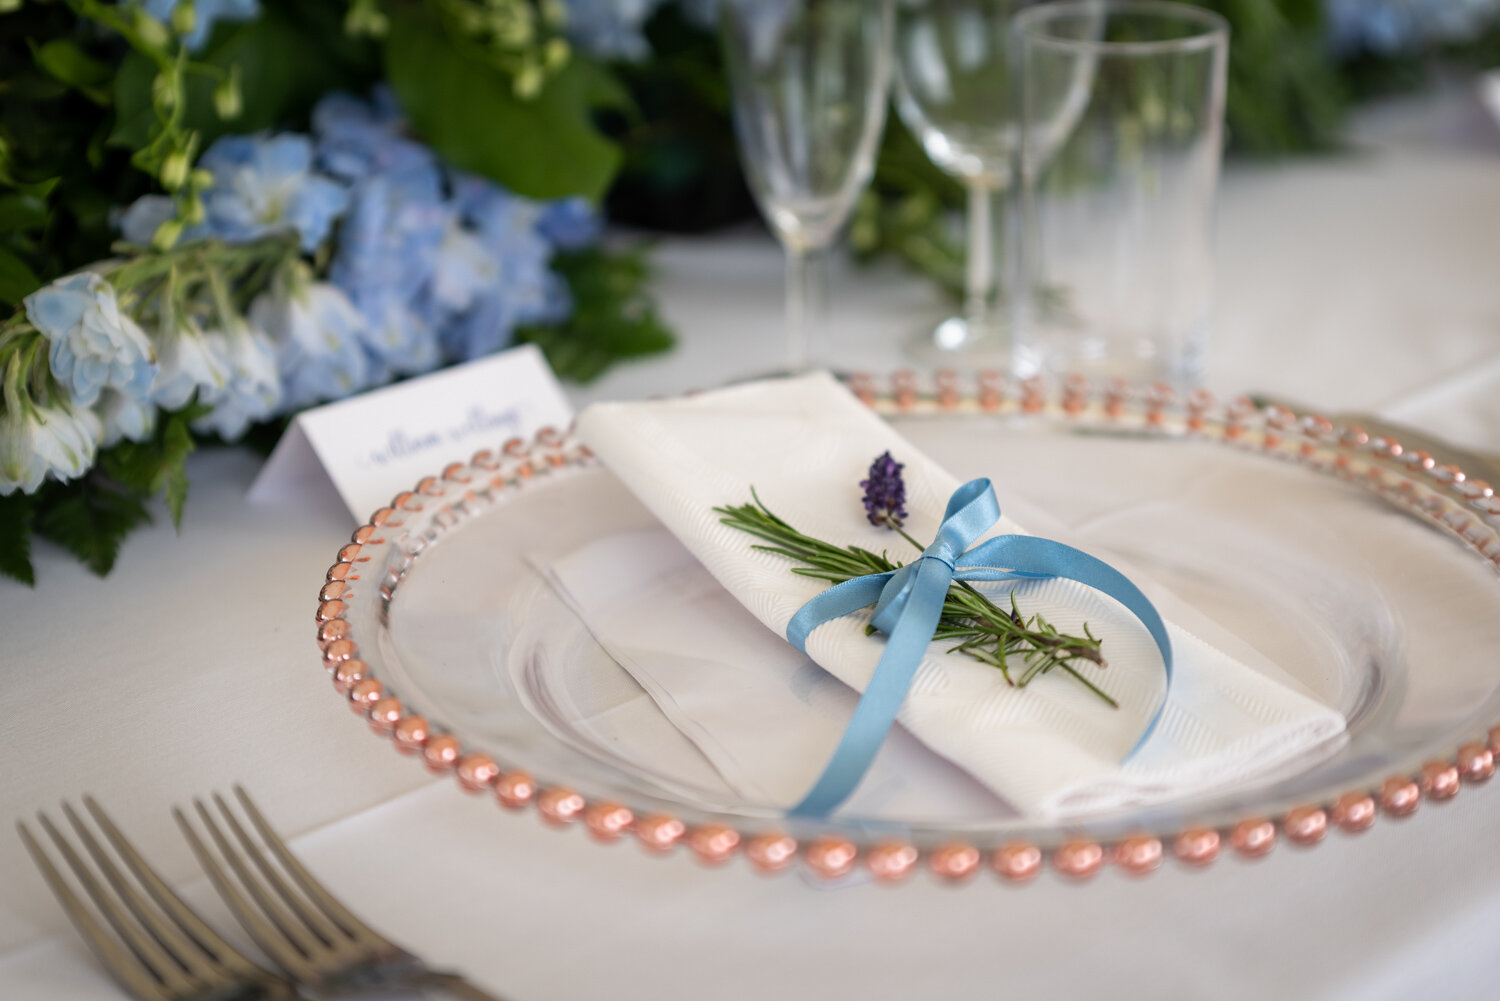 Place setting with lavender at Powys wedding